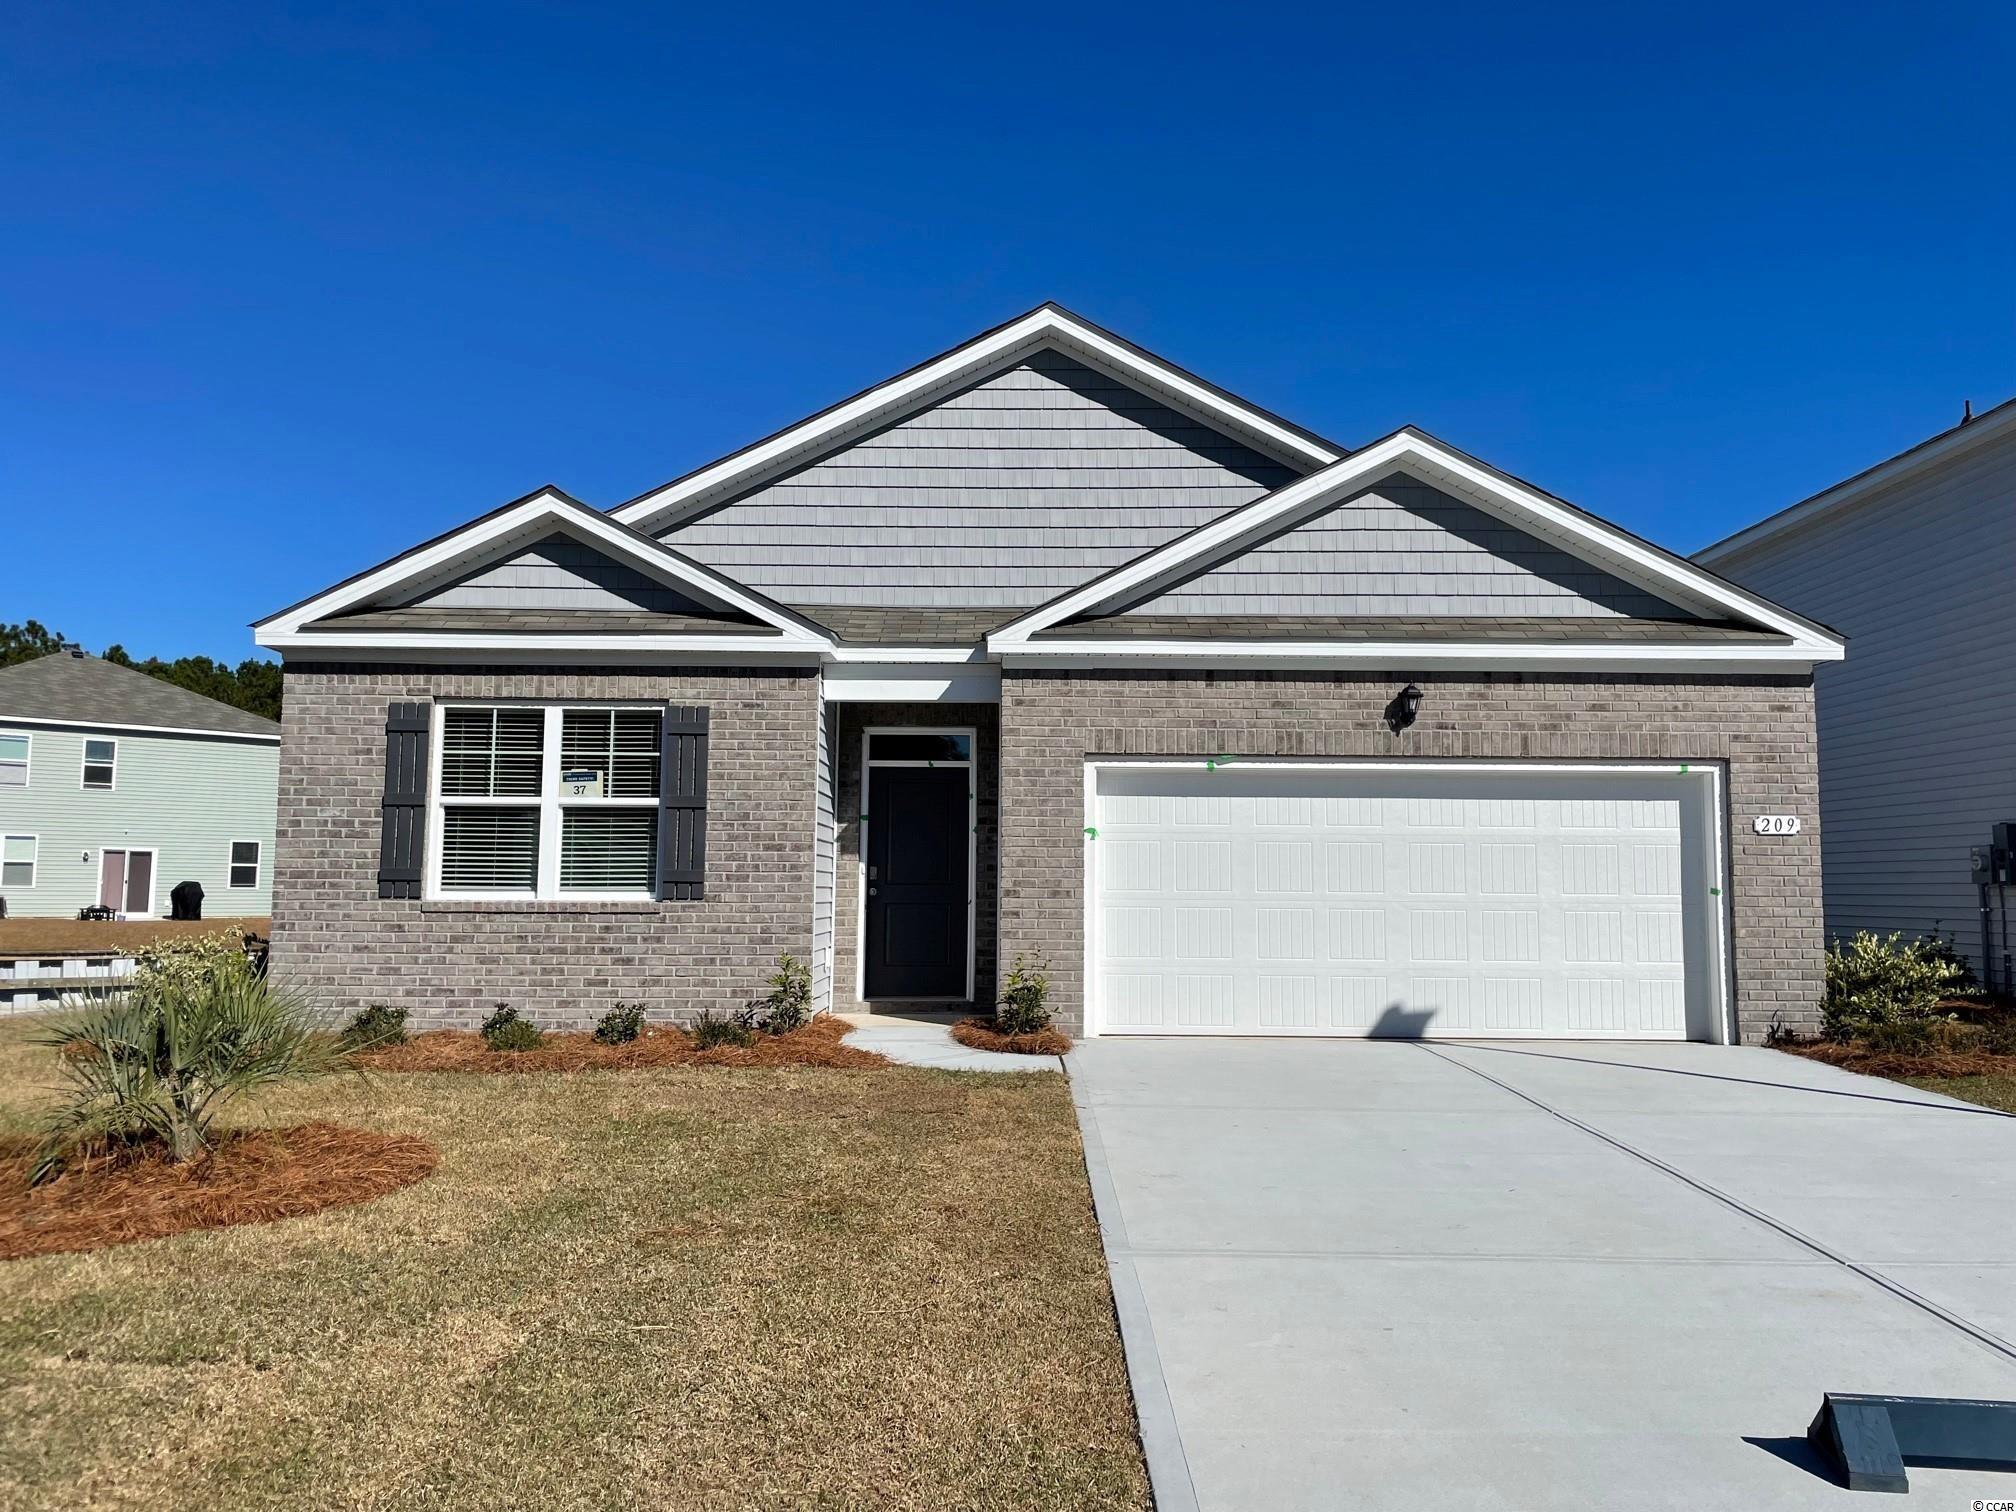 Oak Arbor is a brand new natural gas community conveniently located off of Highway 707 in Murrells Inlet close to shopping, schools, and the famous Murrells Inlet Marsh Walk. The home is the perfect choice for any stage of life, whether you are buying your first home or downsizing. This home features an open concept living room and kitchen that are great for entertaining along with incredible standard features including white painted cabinetry, stainless Whirlpool appliances with a gas range, granite in the kitchen, and beautiful laminate wood flooring throughout the main living areas. This home also boasts 9 ft. ceilings, a great sized pantry for storage, and a split bedroom design creating a private primary bedroom suite! Enjoy the covered porch overlooking the pond on a corner homesite! It gets better- this is America's Smart Home! Control the thermostat, front door light and lock, and video doorbell from your smartphone or with voice commands to Alexa. Tankless gas water heater, two-car garage with garage door opener, and our QuickTie framing system also included.  *Photos are of a similar Cali home. (Home and community information, including pricing, included features, terms, availability and amenities, are subject to change prior to sale at any time without notice or obligation. Square footages are approximate. Pictures, photographs, colors, features, and sizes are for illustration purposes only and will vary from the homes as built. Equal housing opportunity builder.)